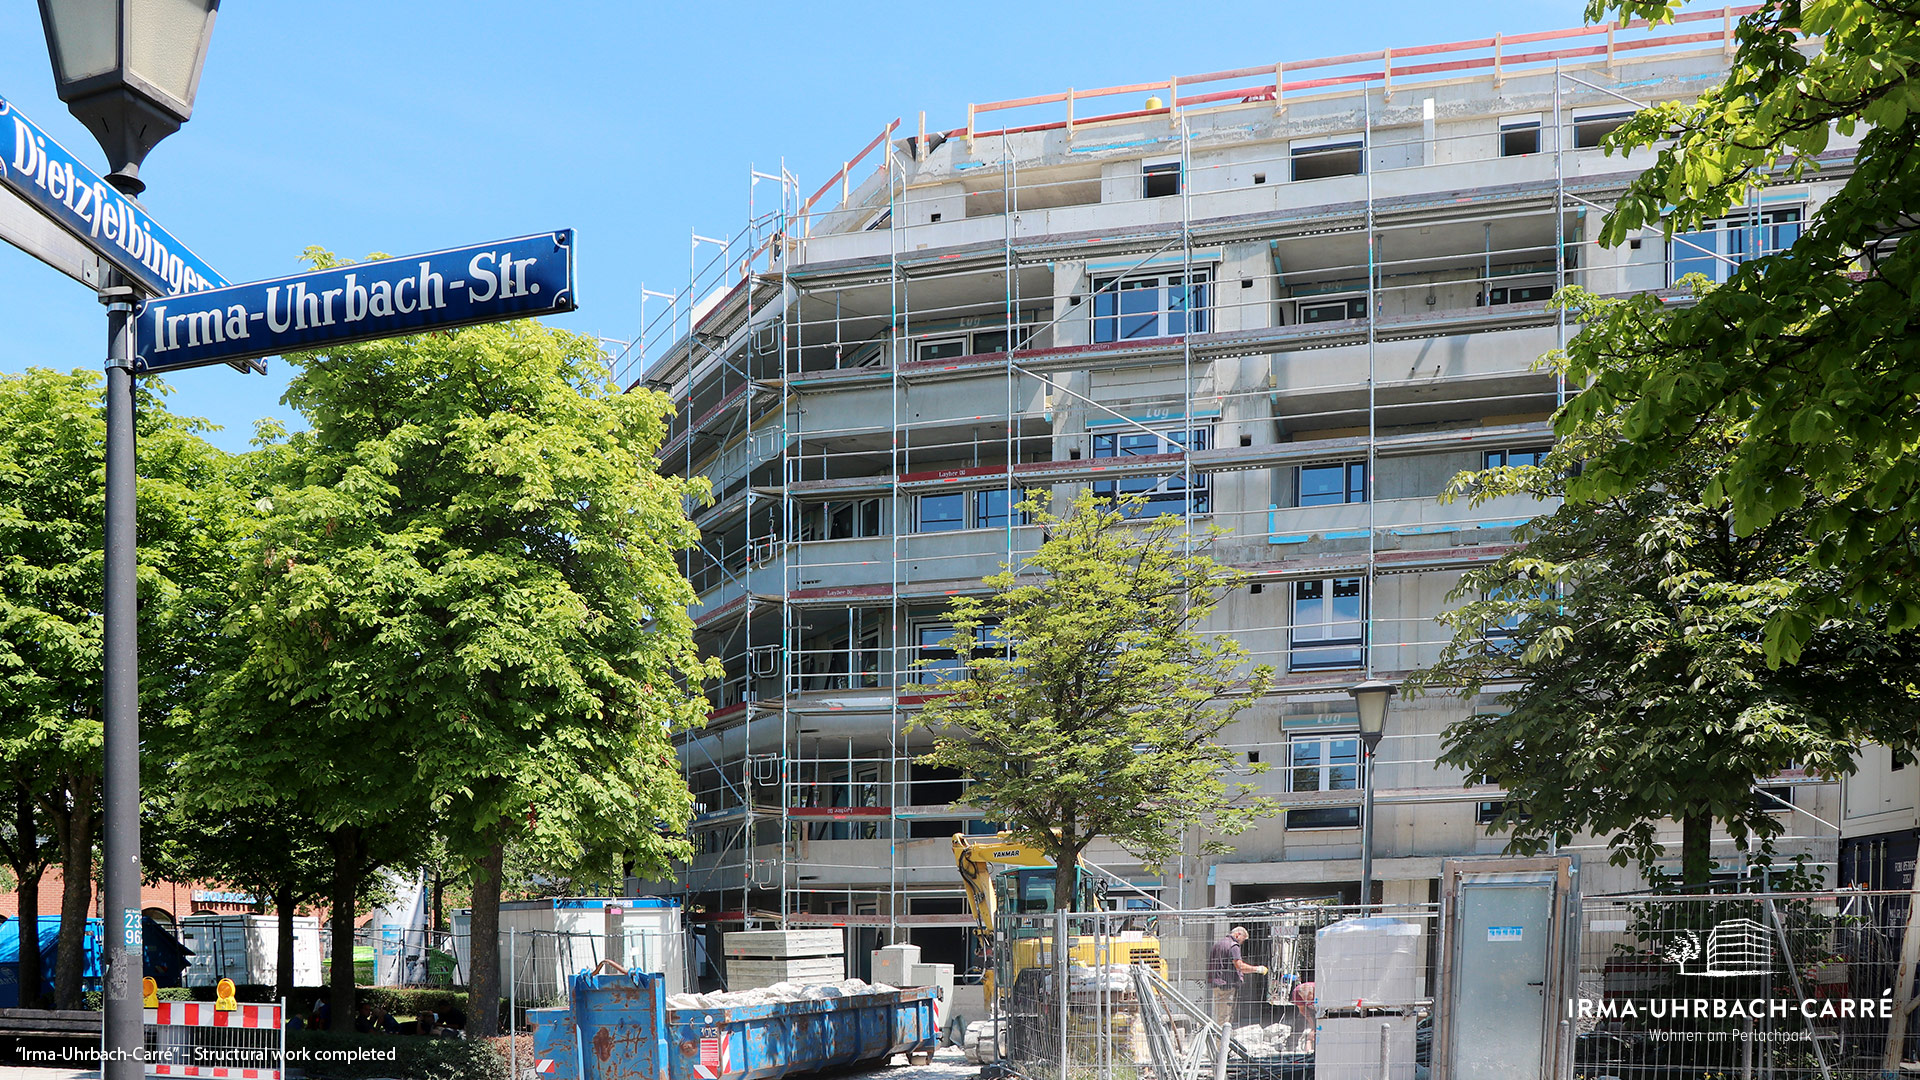 """Irma-Uhrbach-Carré"" in Munich's Perlach Süd district: Structural work completed"